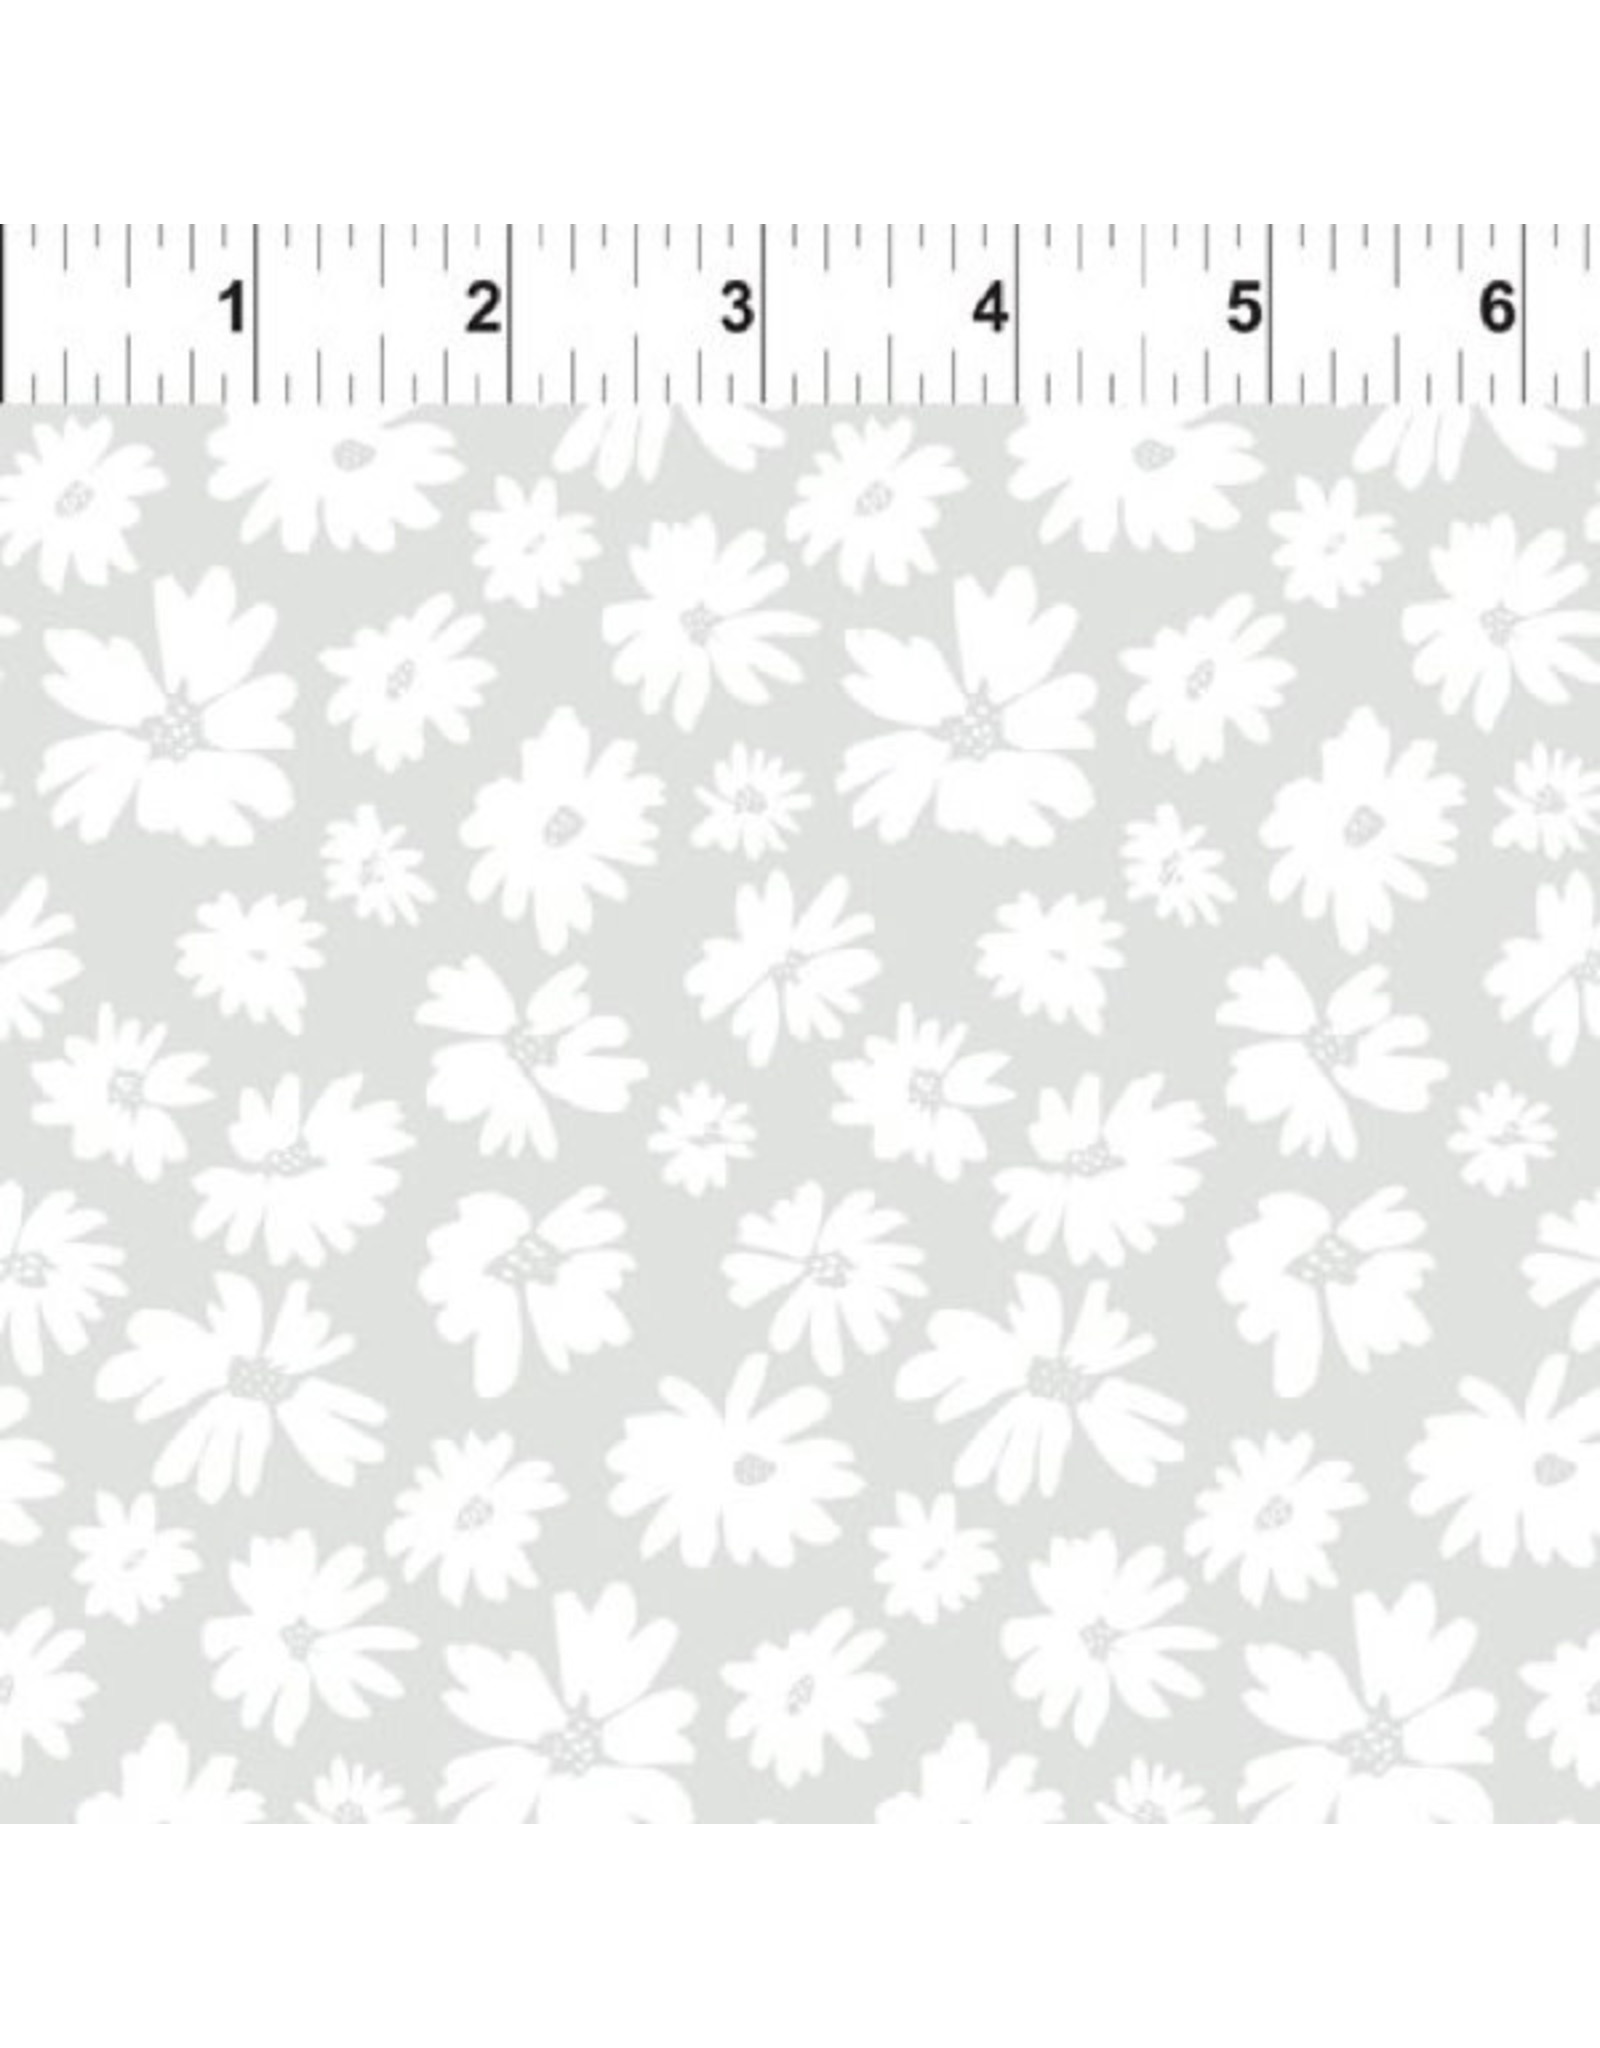 In the Beginning Doodle Blossoms - Wild Flowers Light Gray